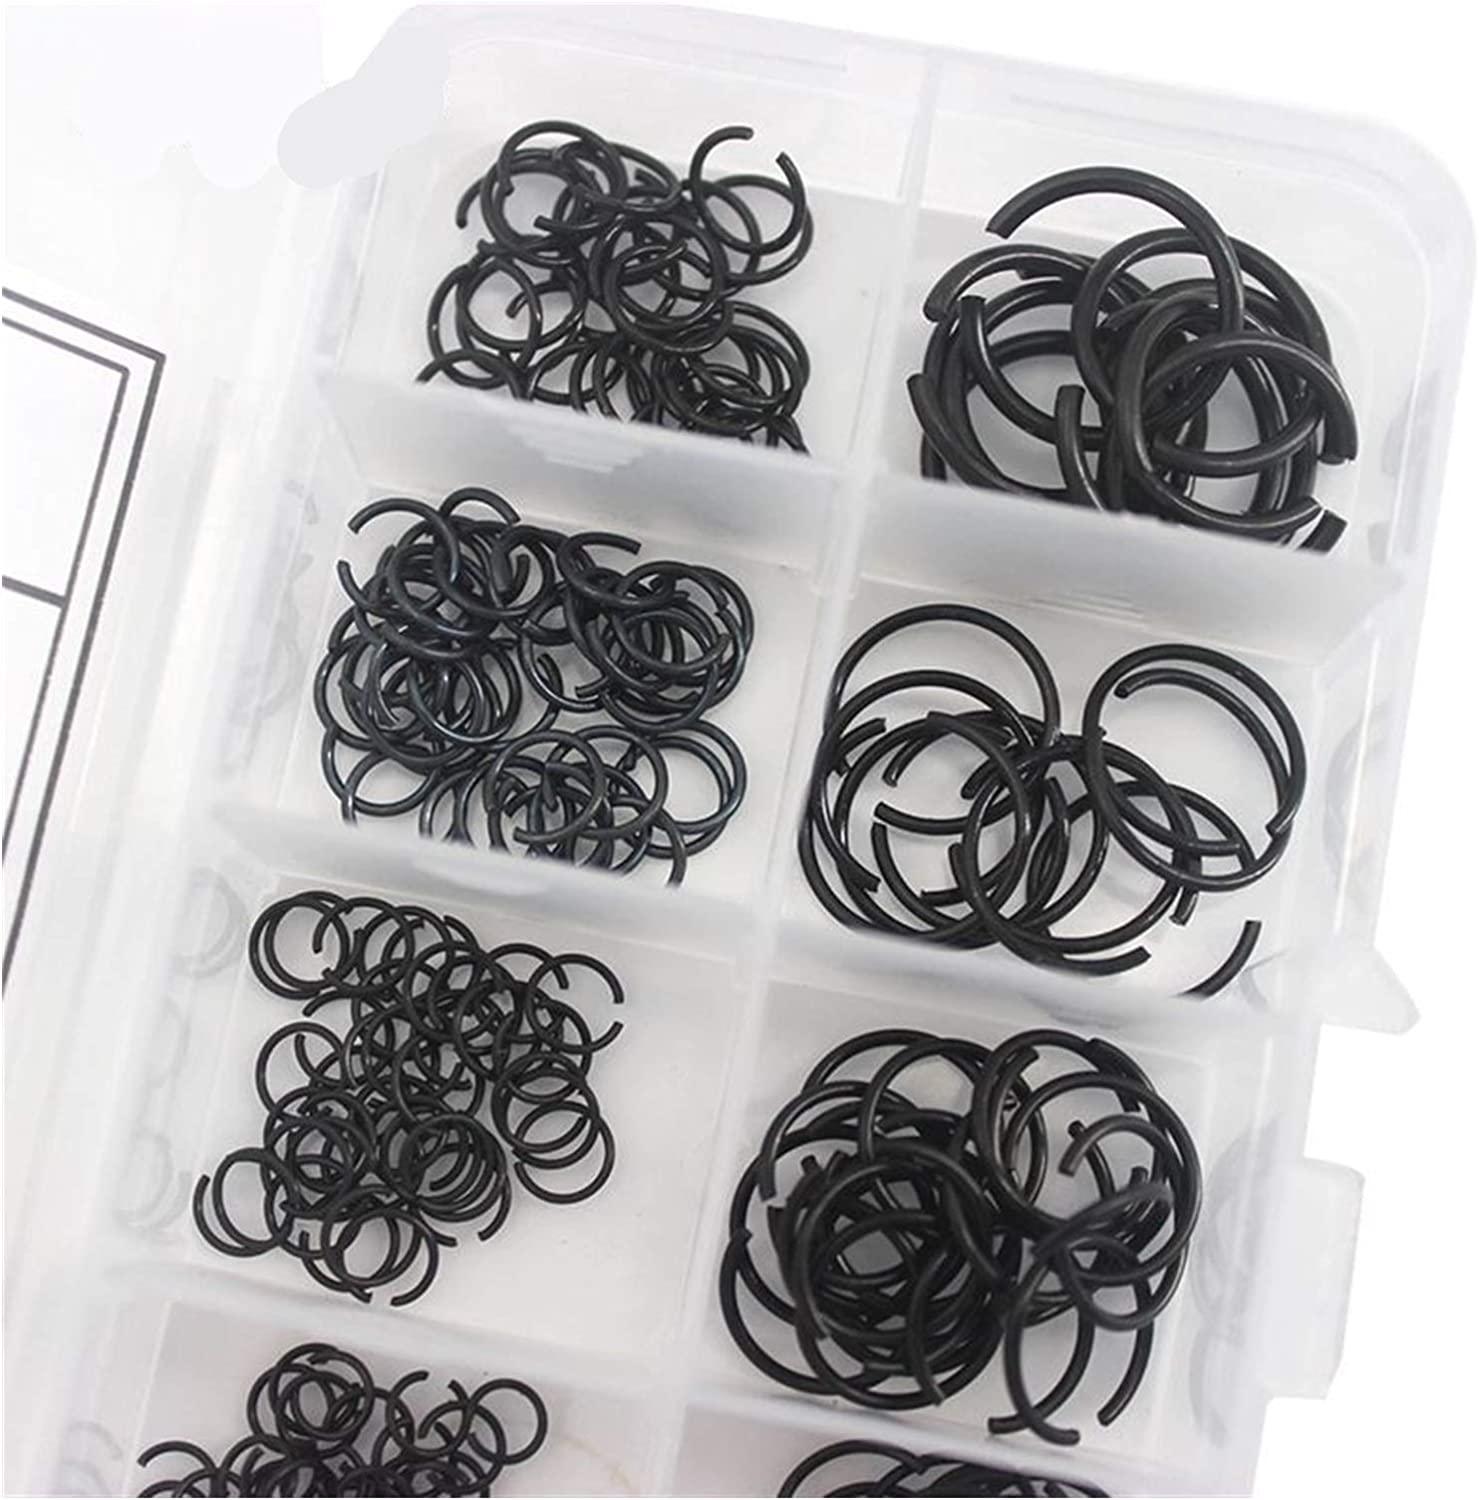 M16 Mix Round Wire Snap Rings for Hole Assorted Kit 65 Manganese Steel Circlips M8 M9 M10 M11 M12 M14 DShanLa DShanLa 300 Pieces M4